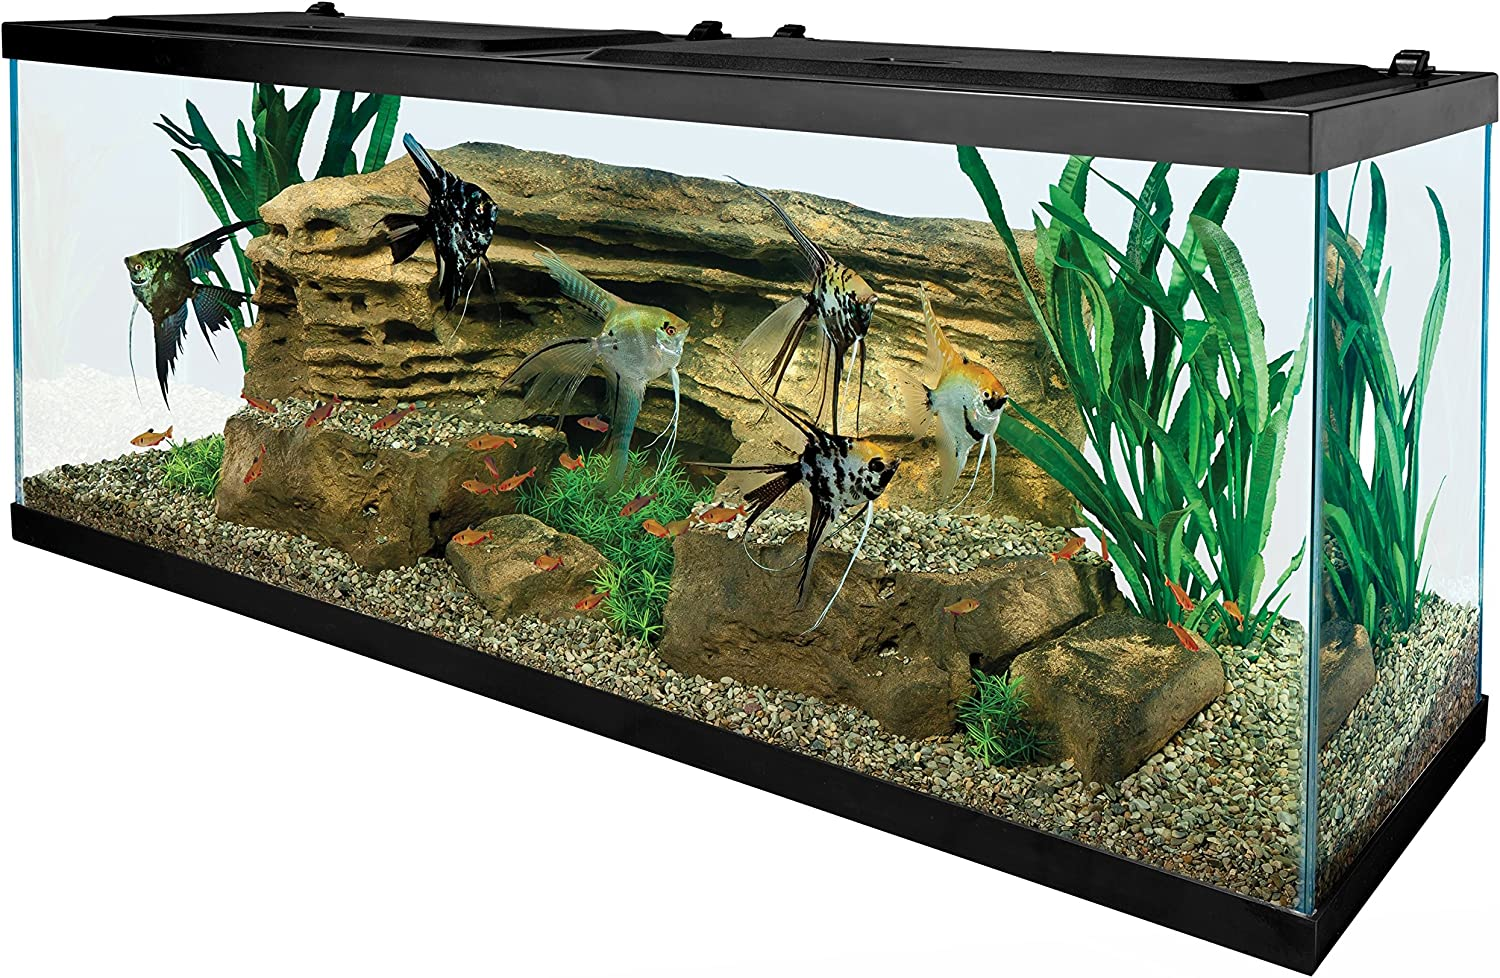 Amazon.com : Tetra 55 Gallon Aquarium Kit with Fish Tank, Fish Net ...